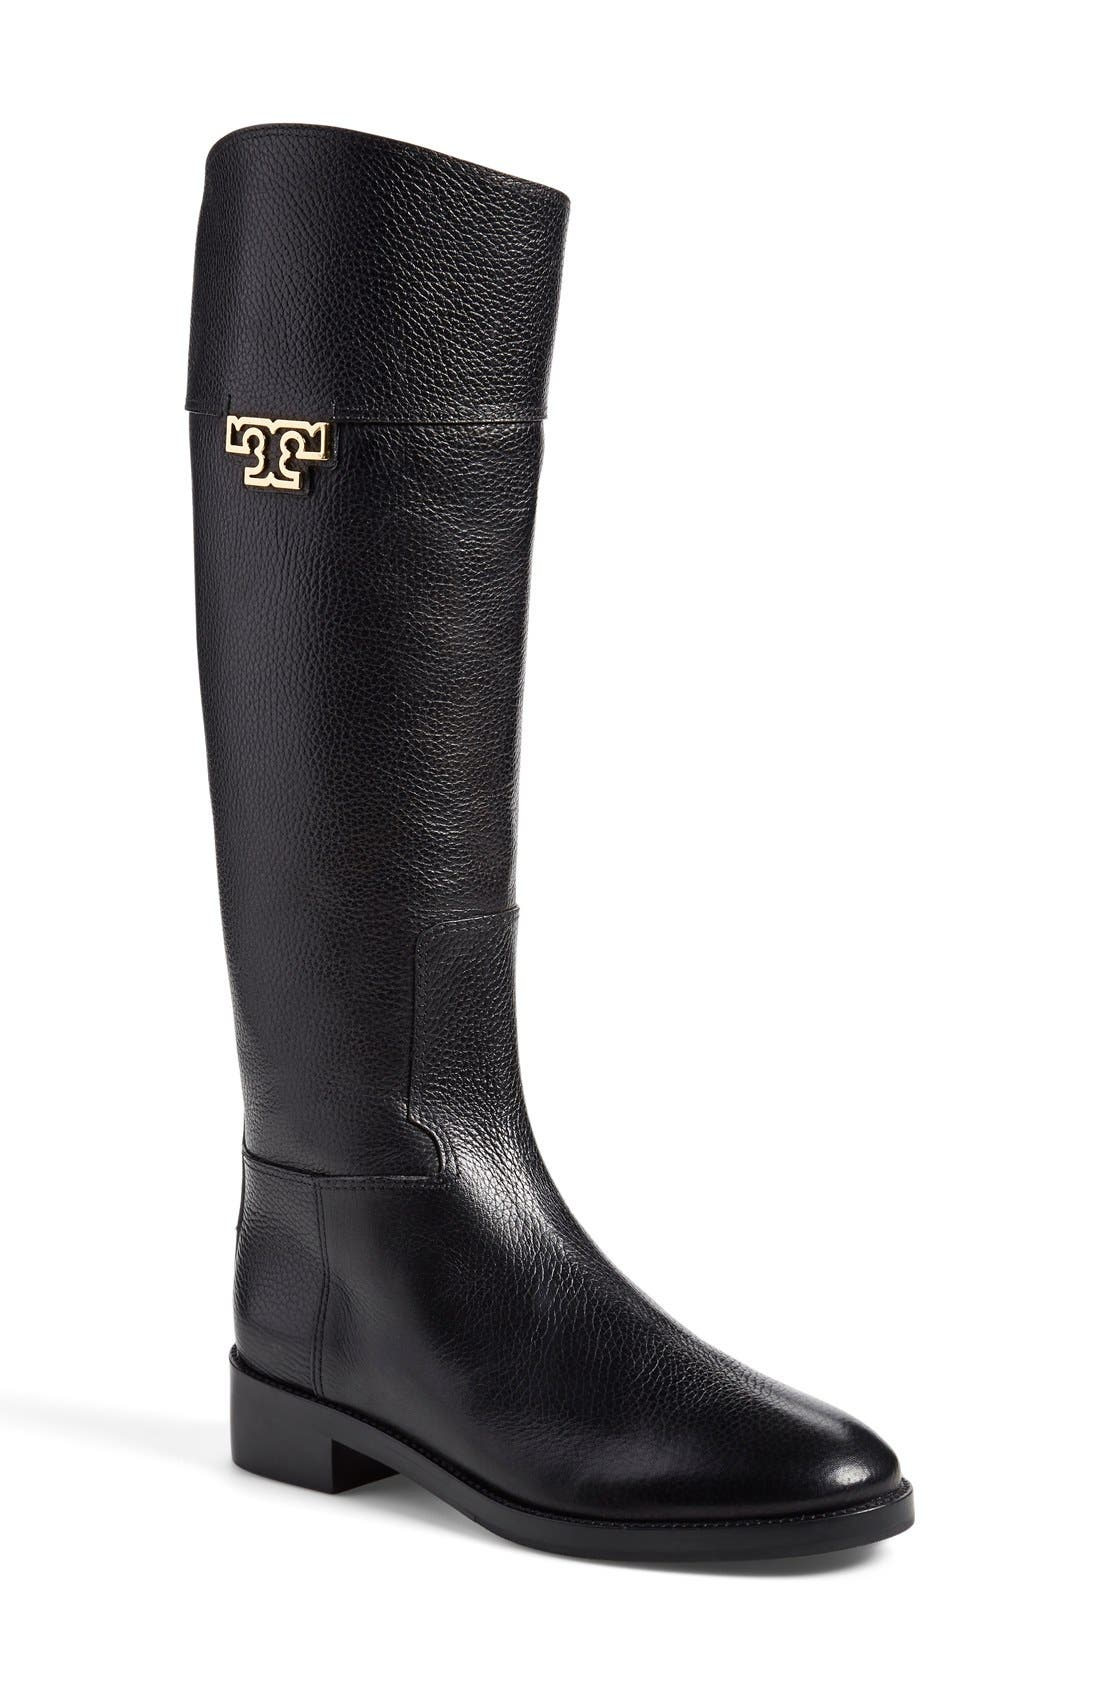 Main Image - Tory Burch 'Joanna' Riding Boot (Women) (Nordstrom Exclusive)